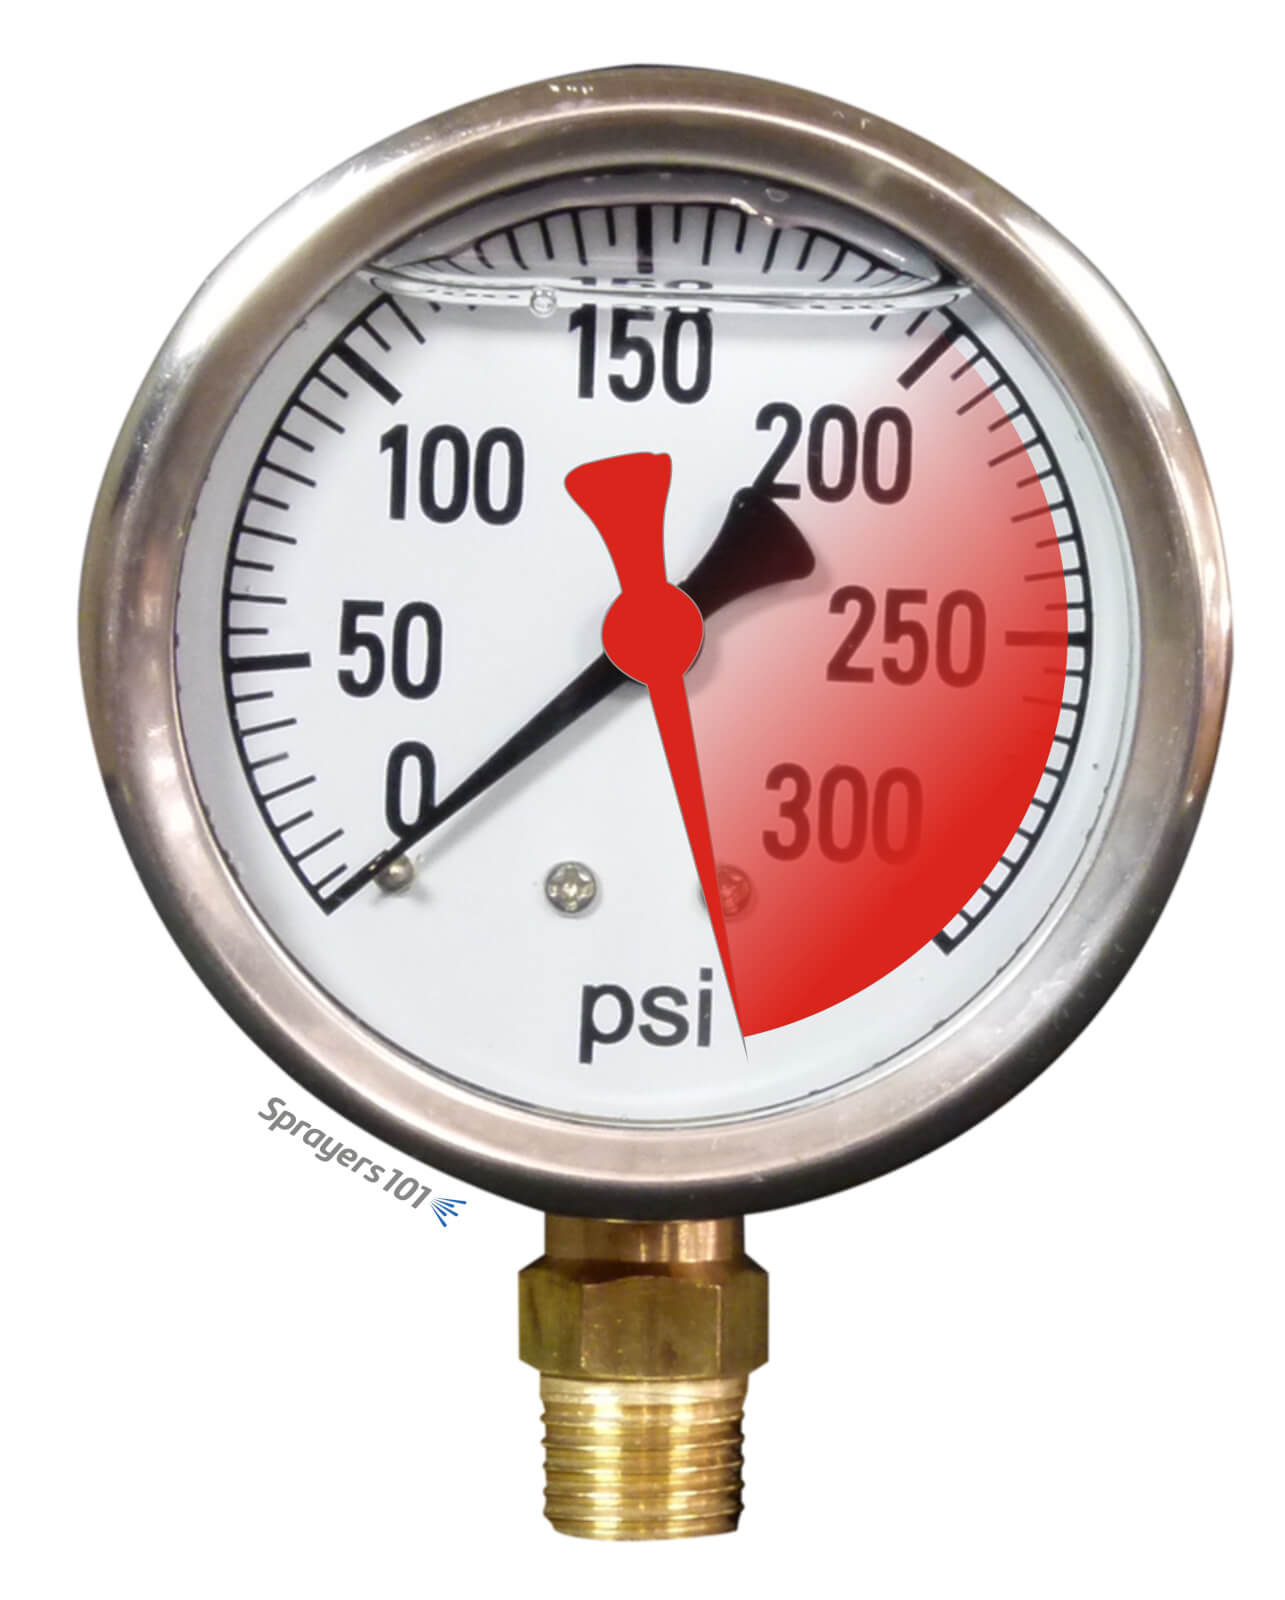 Why Does The Pressure Gauge Spike Sprayers 101